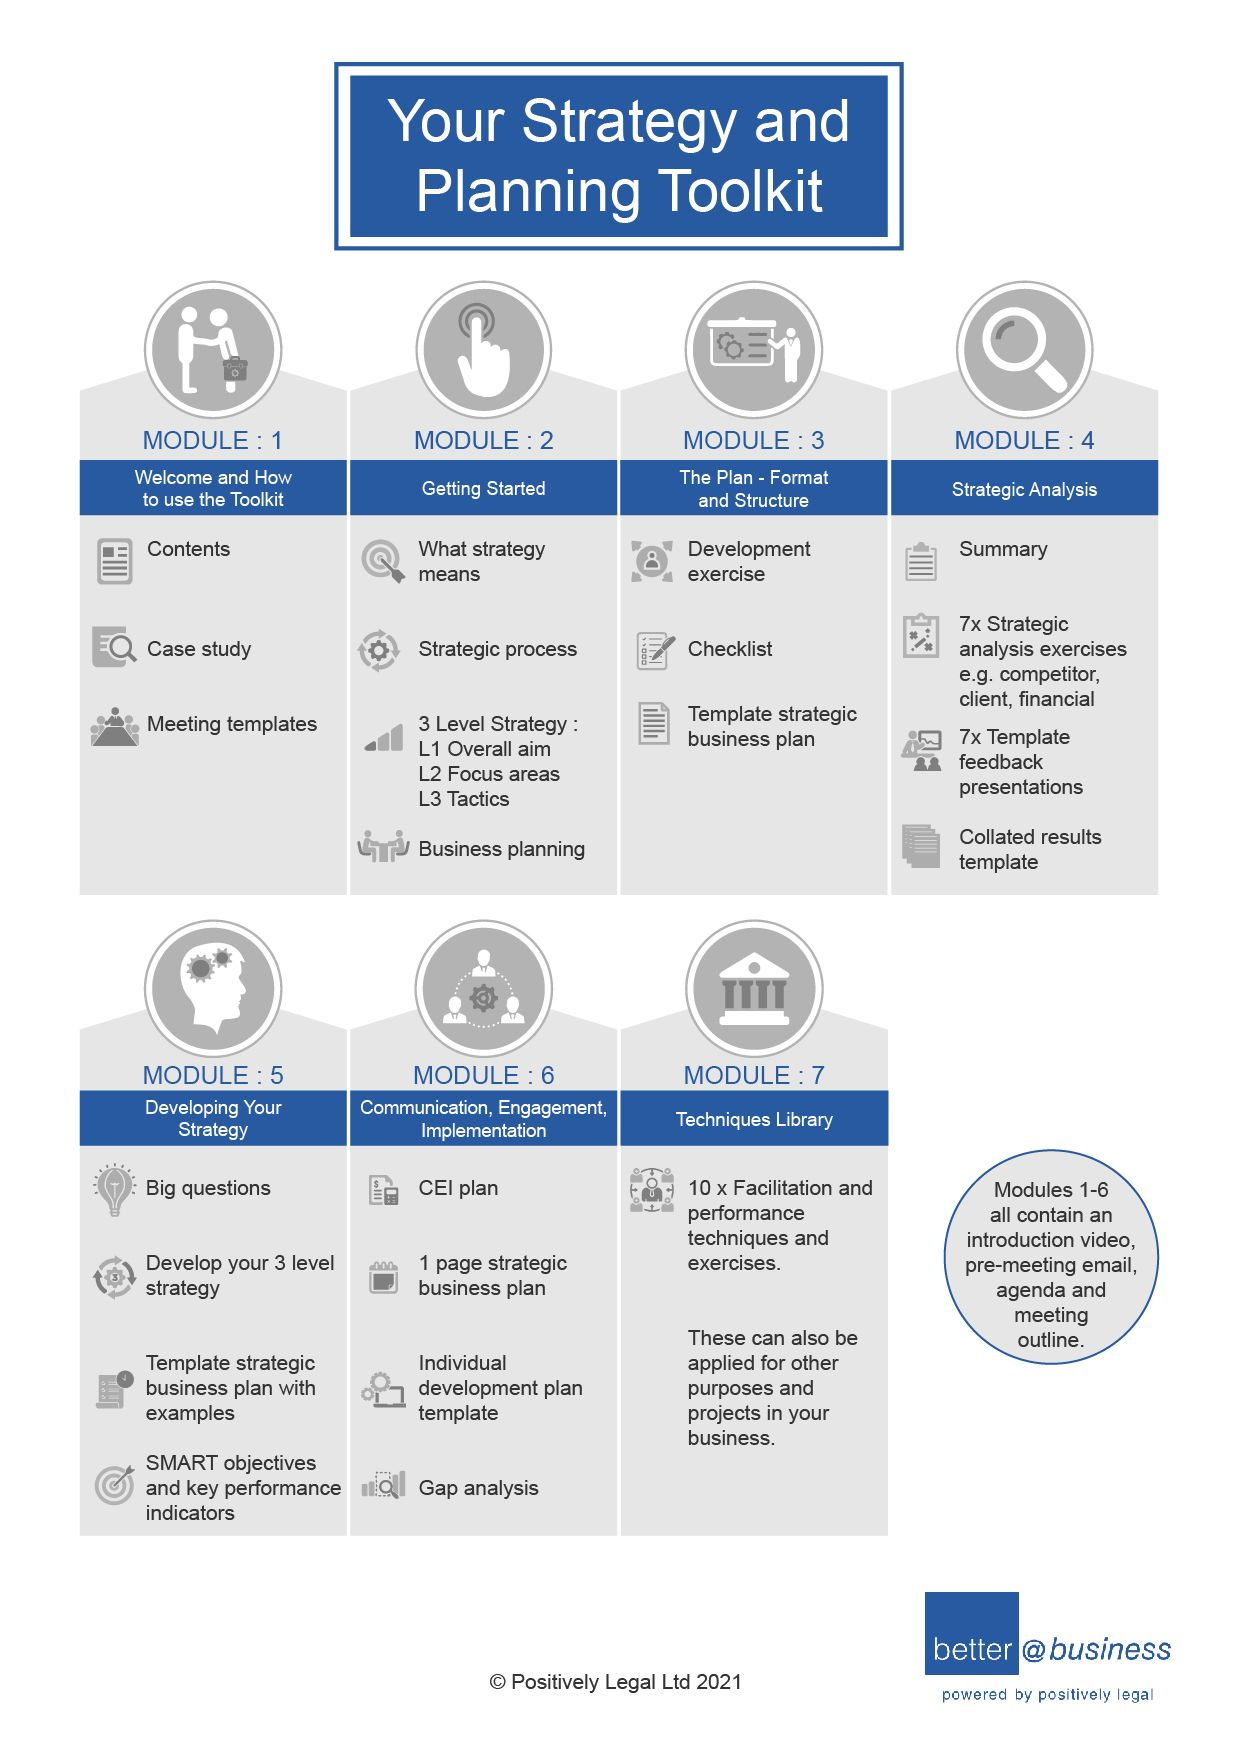 infogram strategy planning toolkit better at business